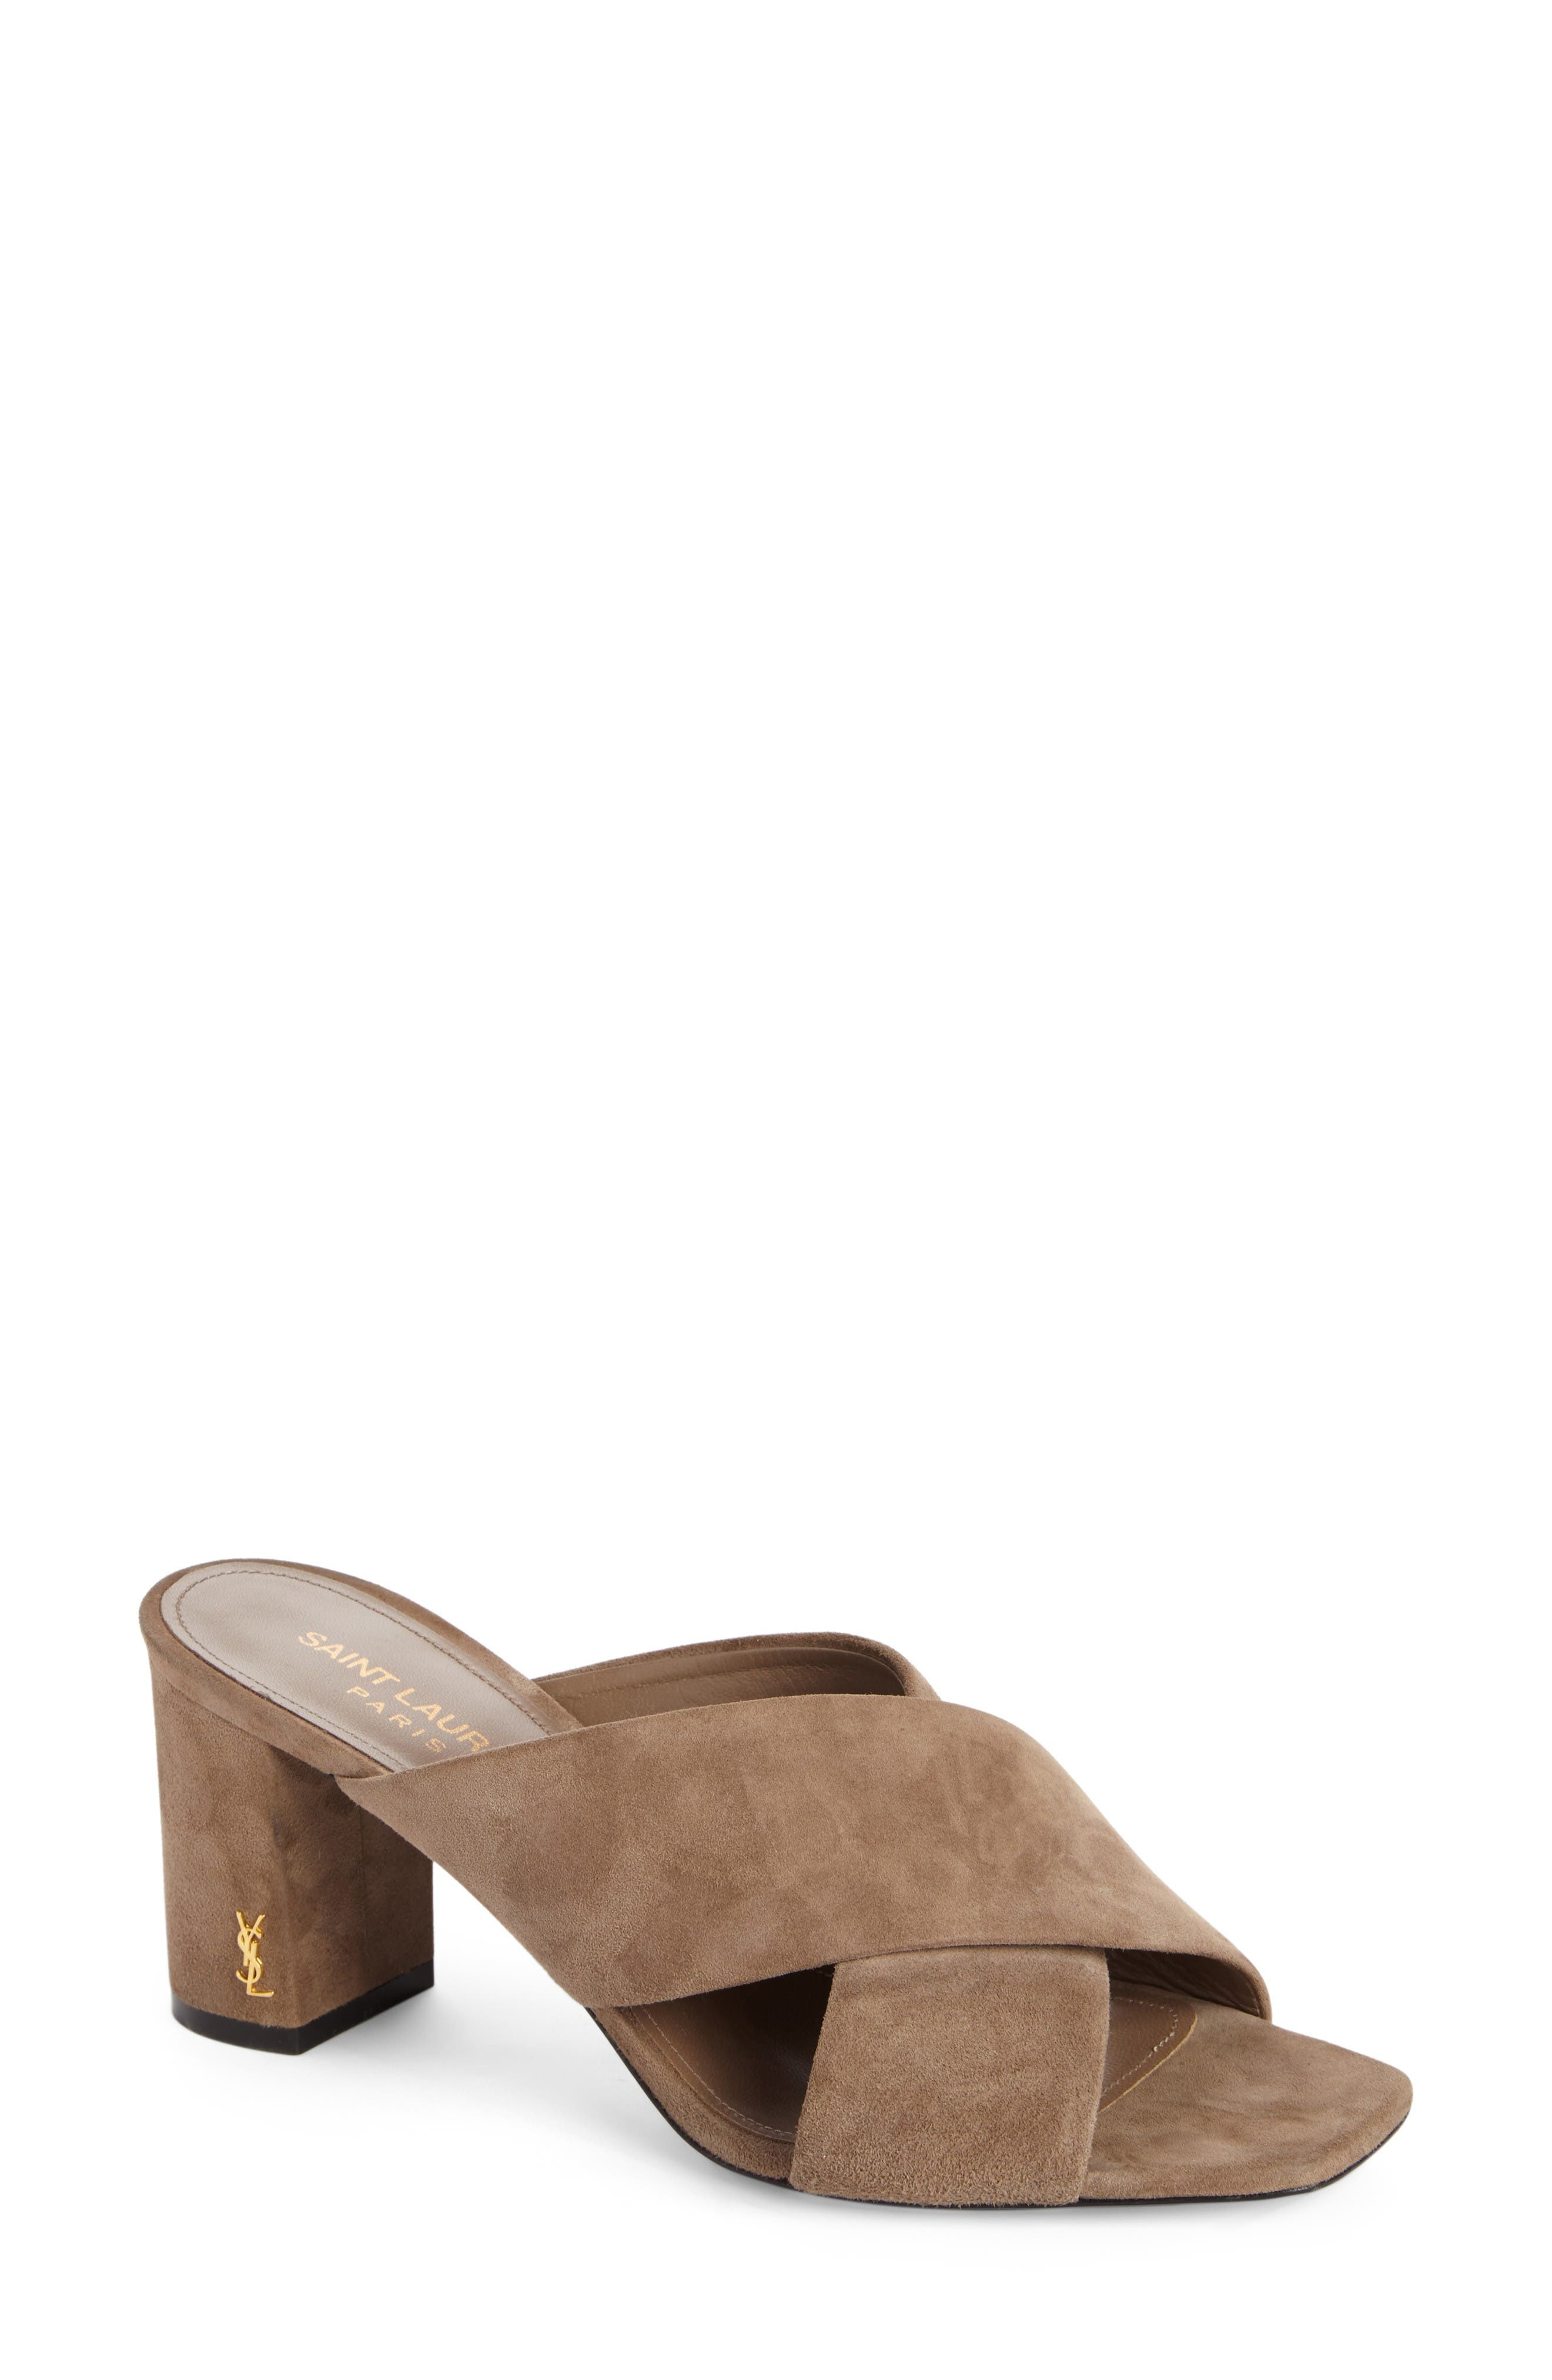 Loulou Sandal,                         Main,                         color, Taupe